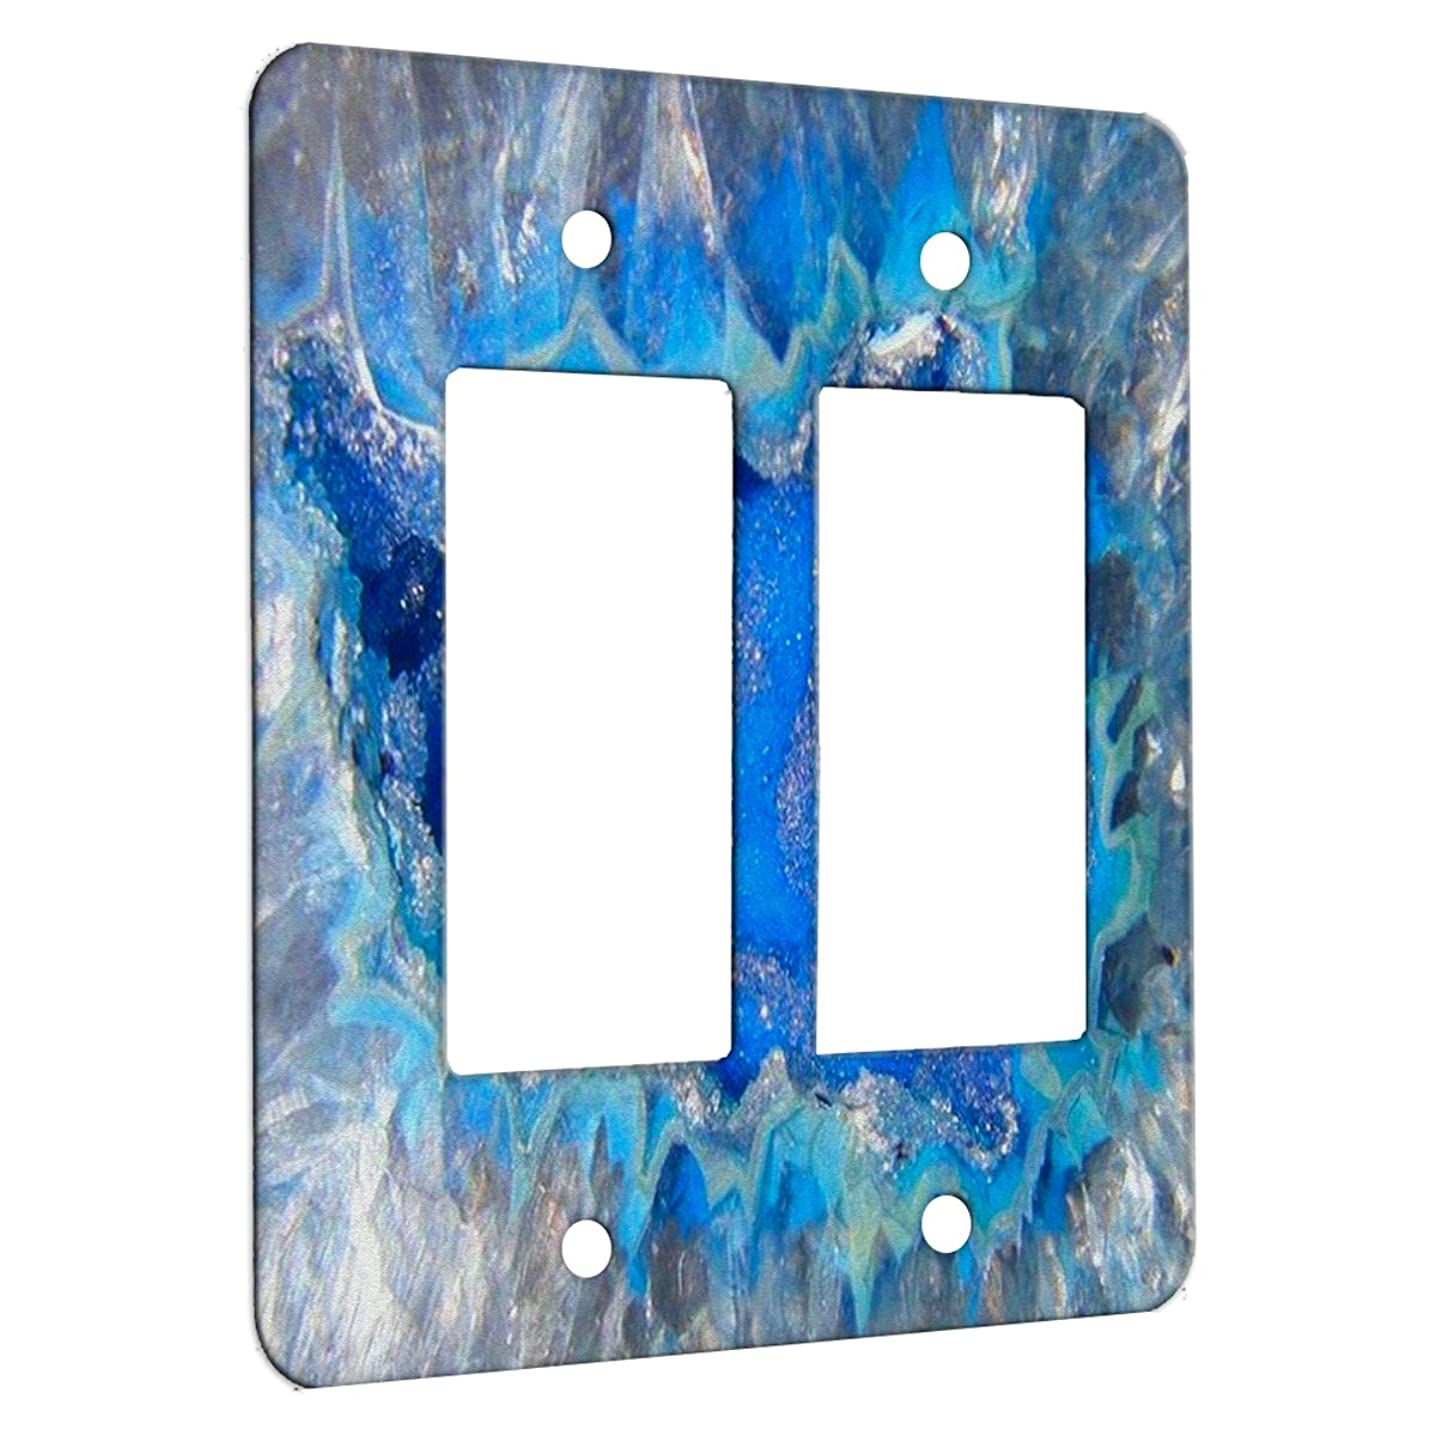 Geode Crystal Azure - Decor Wall Plate Cover Metal (2 Gang Decora)